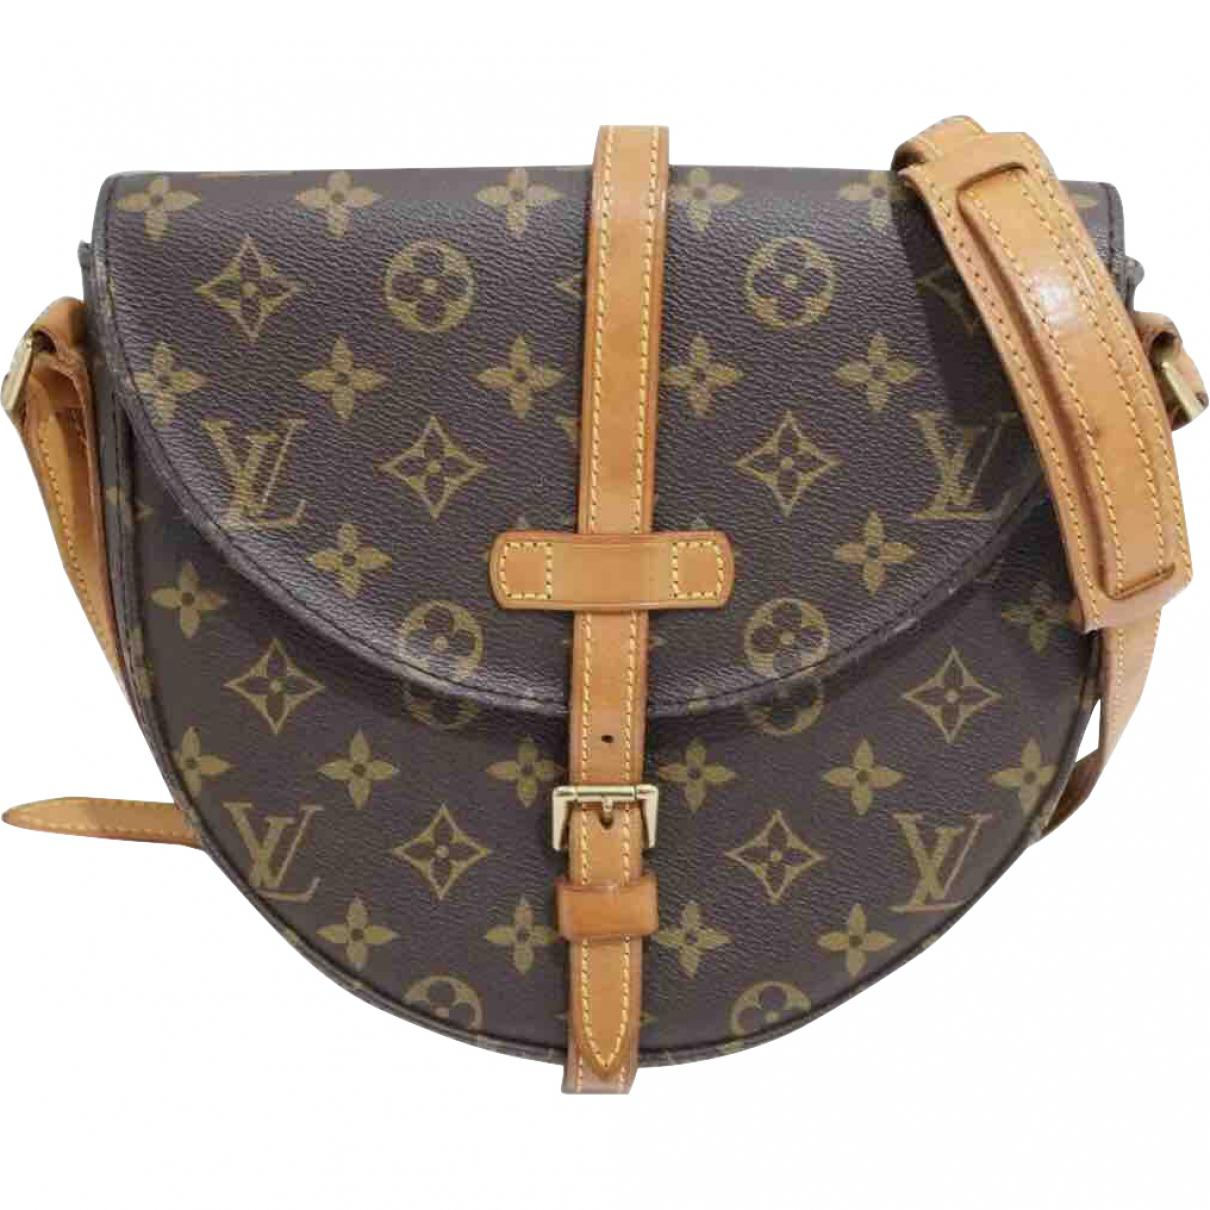 a9aef4b3af84 Lyst - Louis Vuitton Pre-owned Leather Crossbody Bag in Brown